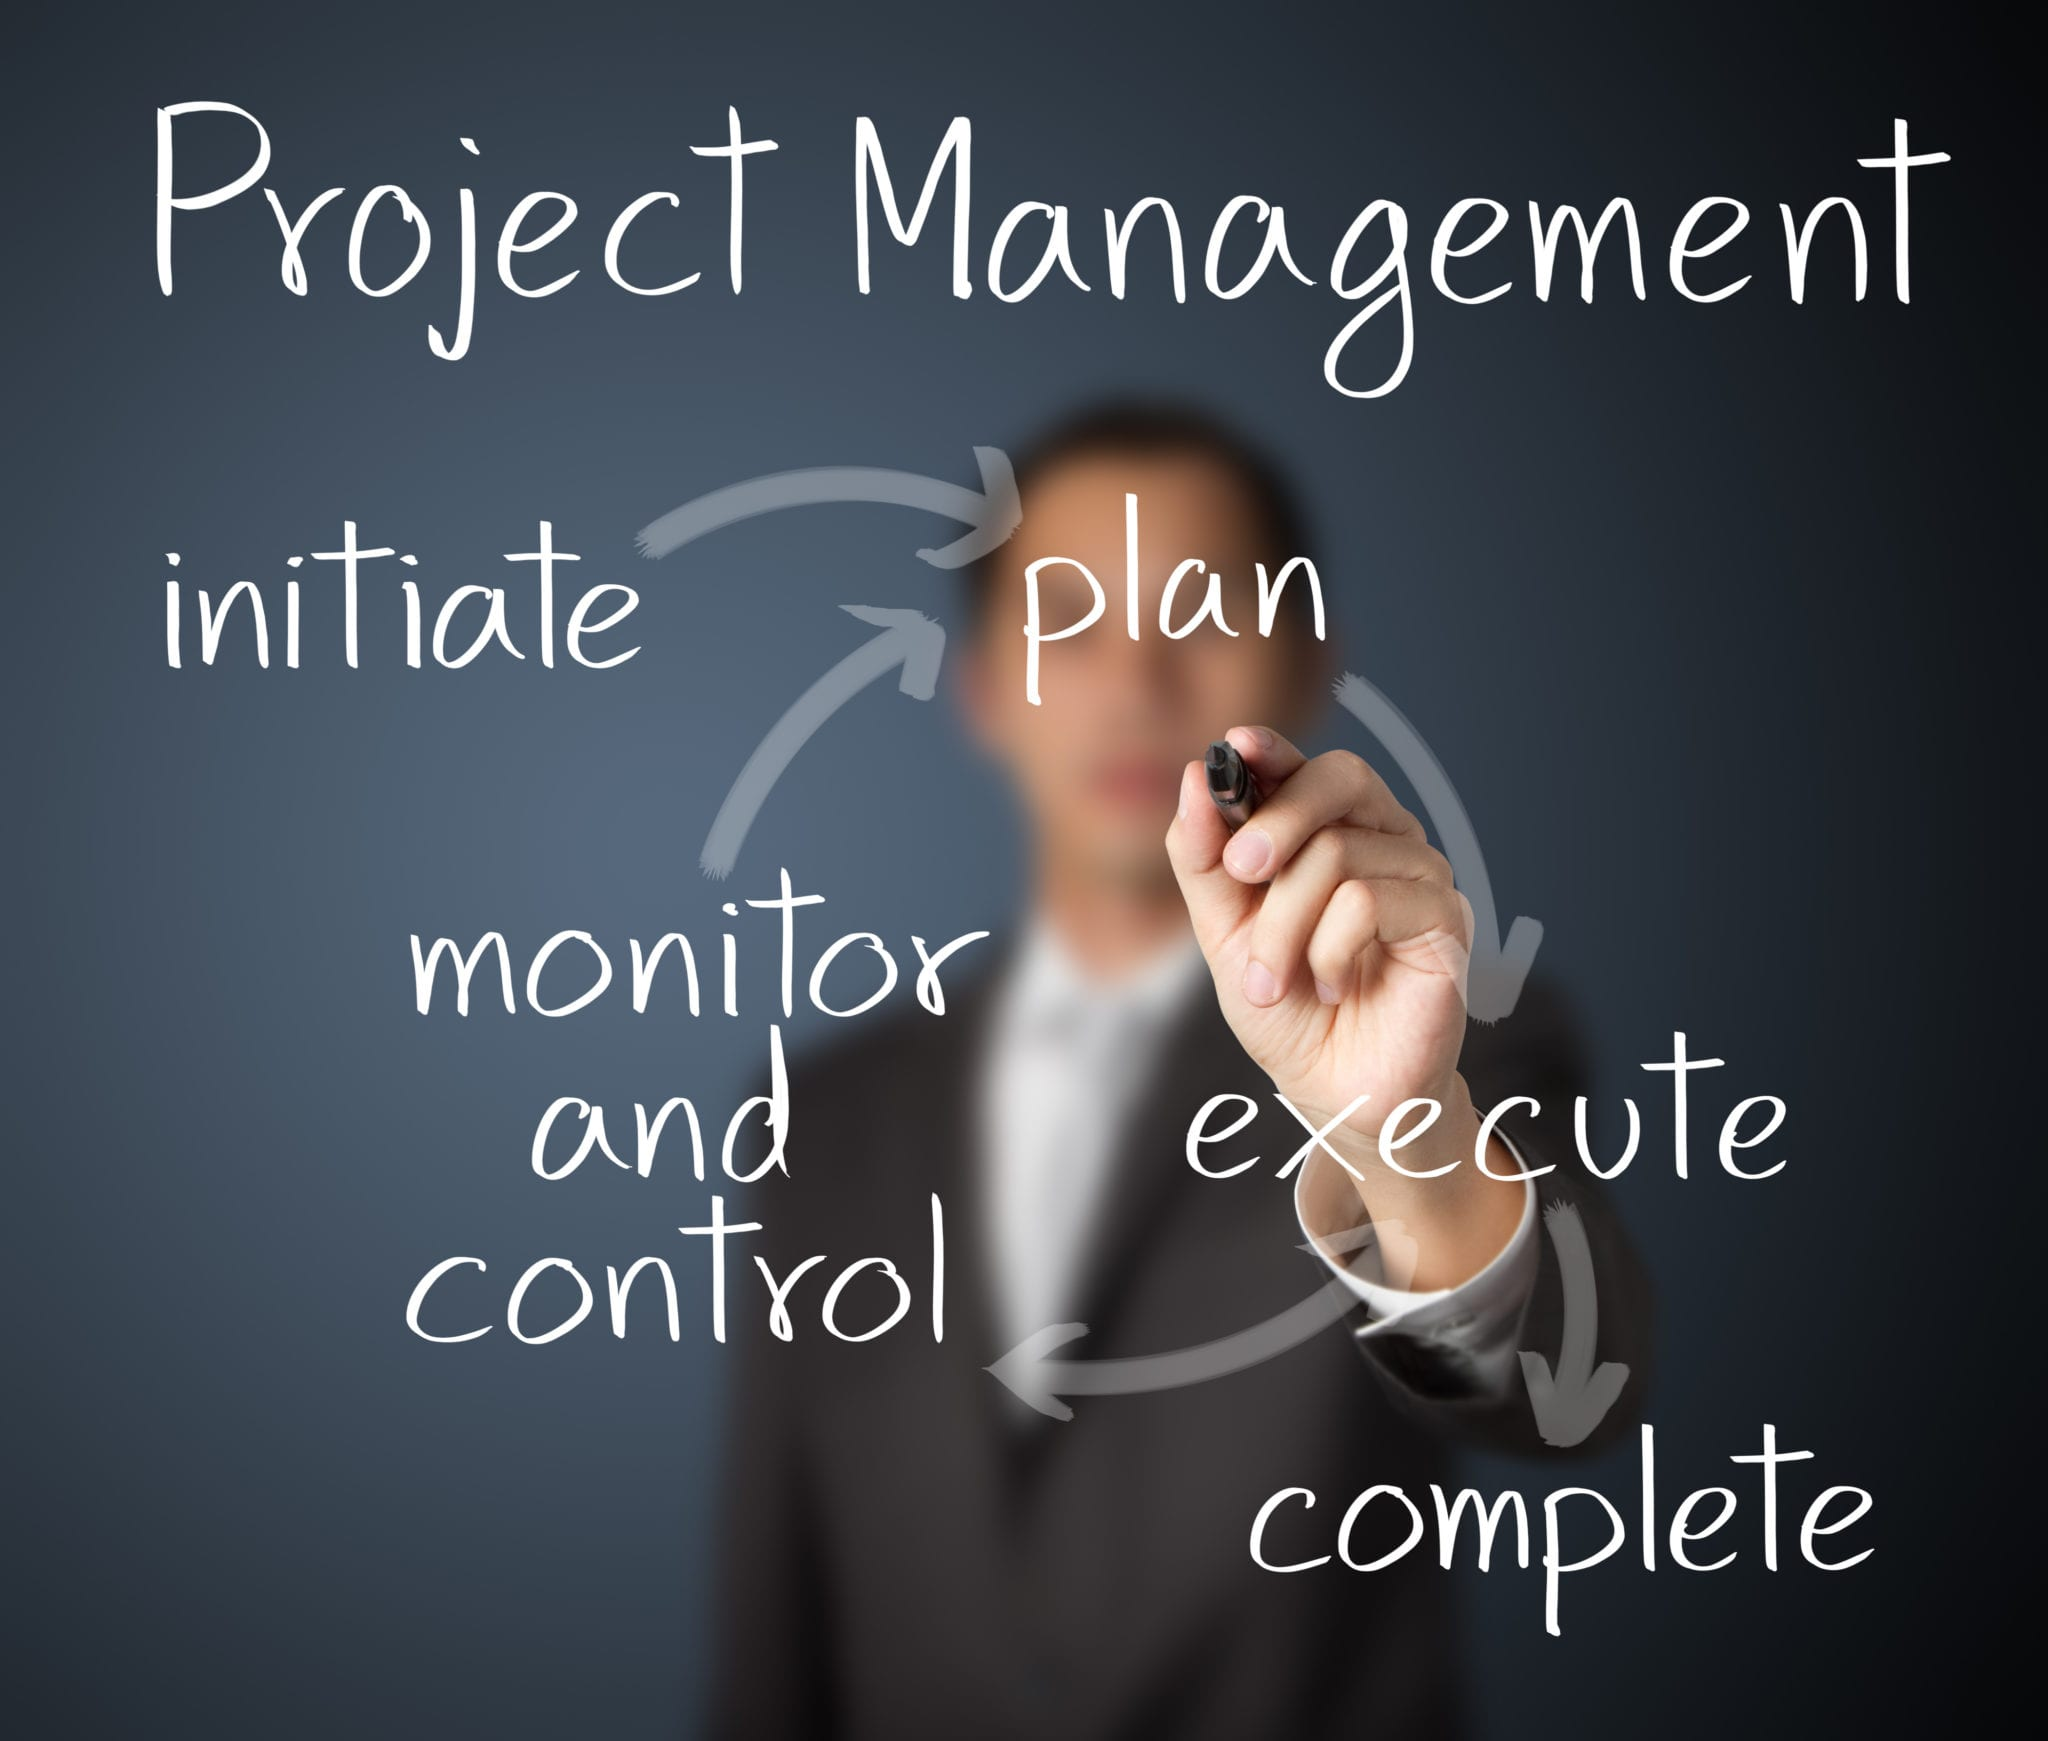 project management.jpeg